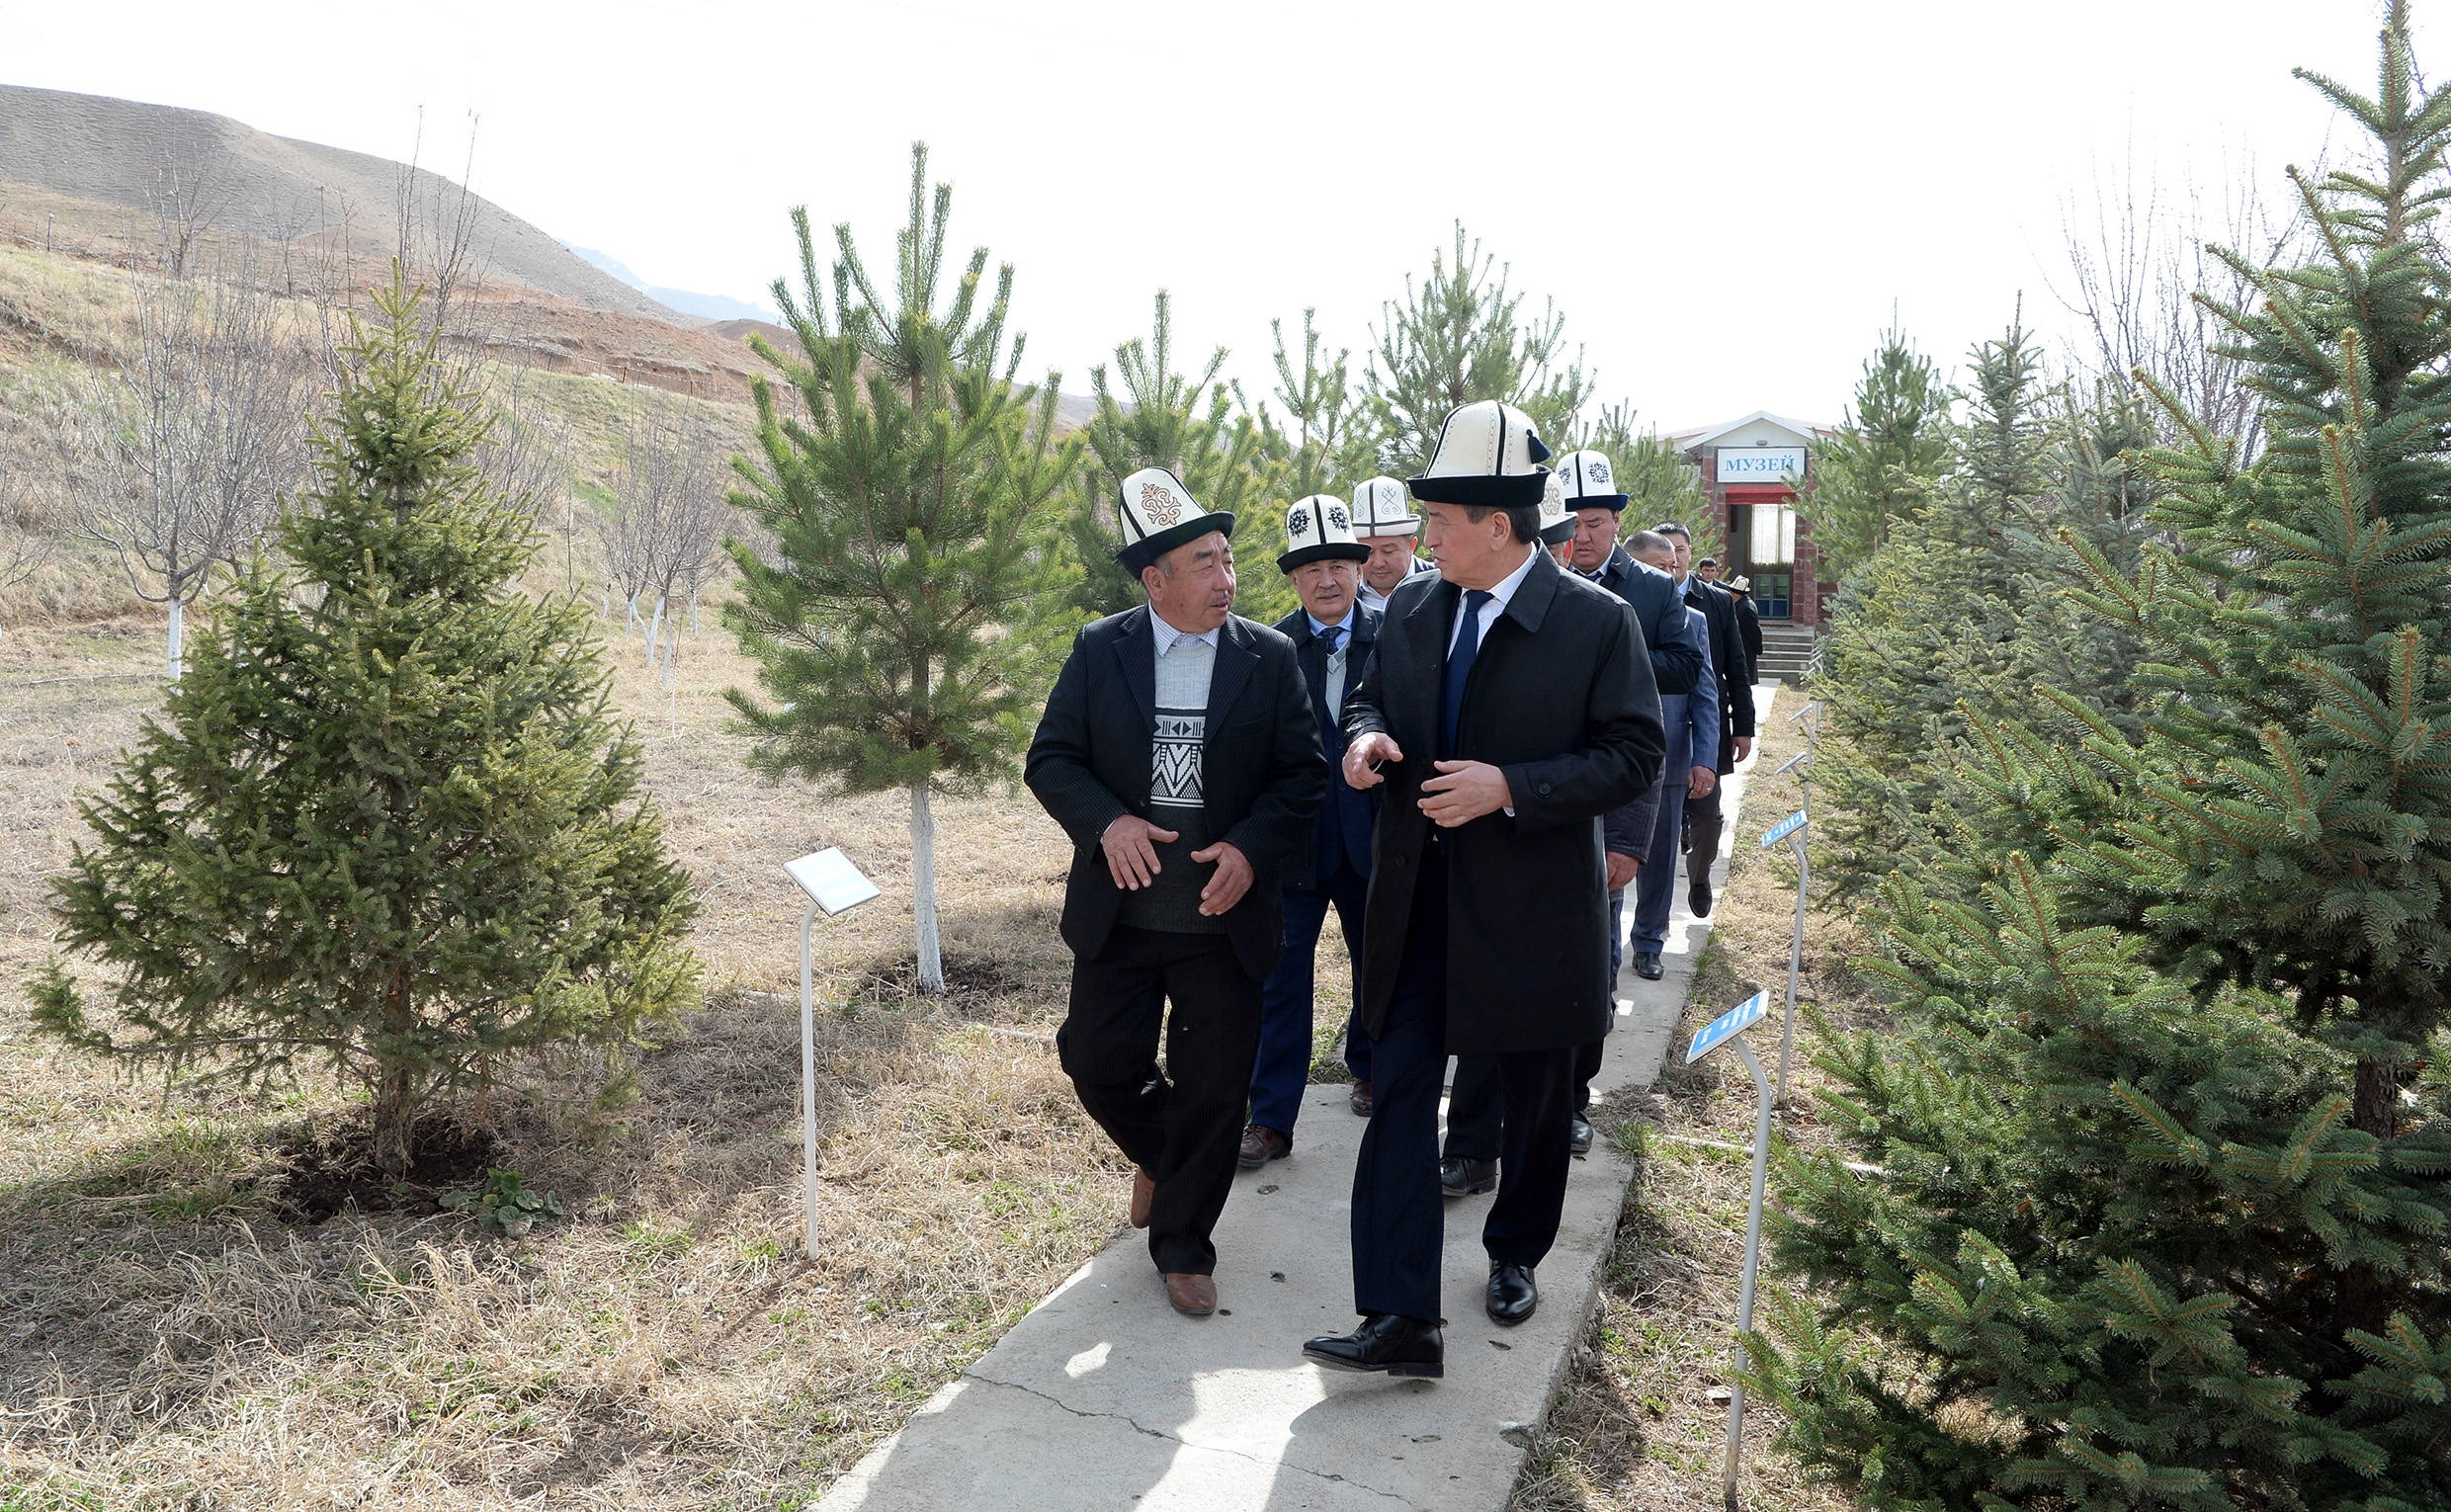 Jeenbekov on a walkabout during the Aksy commemoration event. (Photo: Presidential administration website)